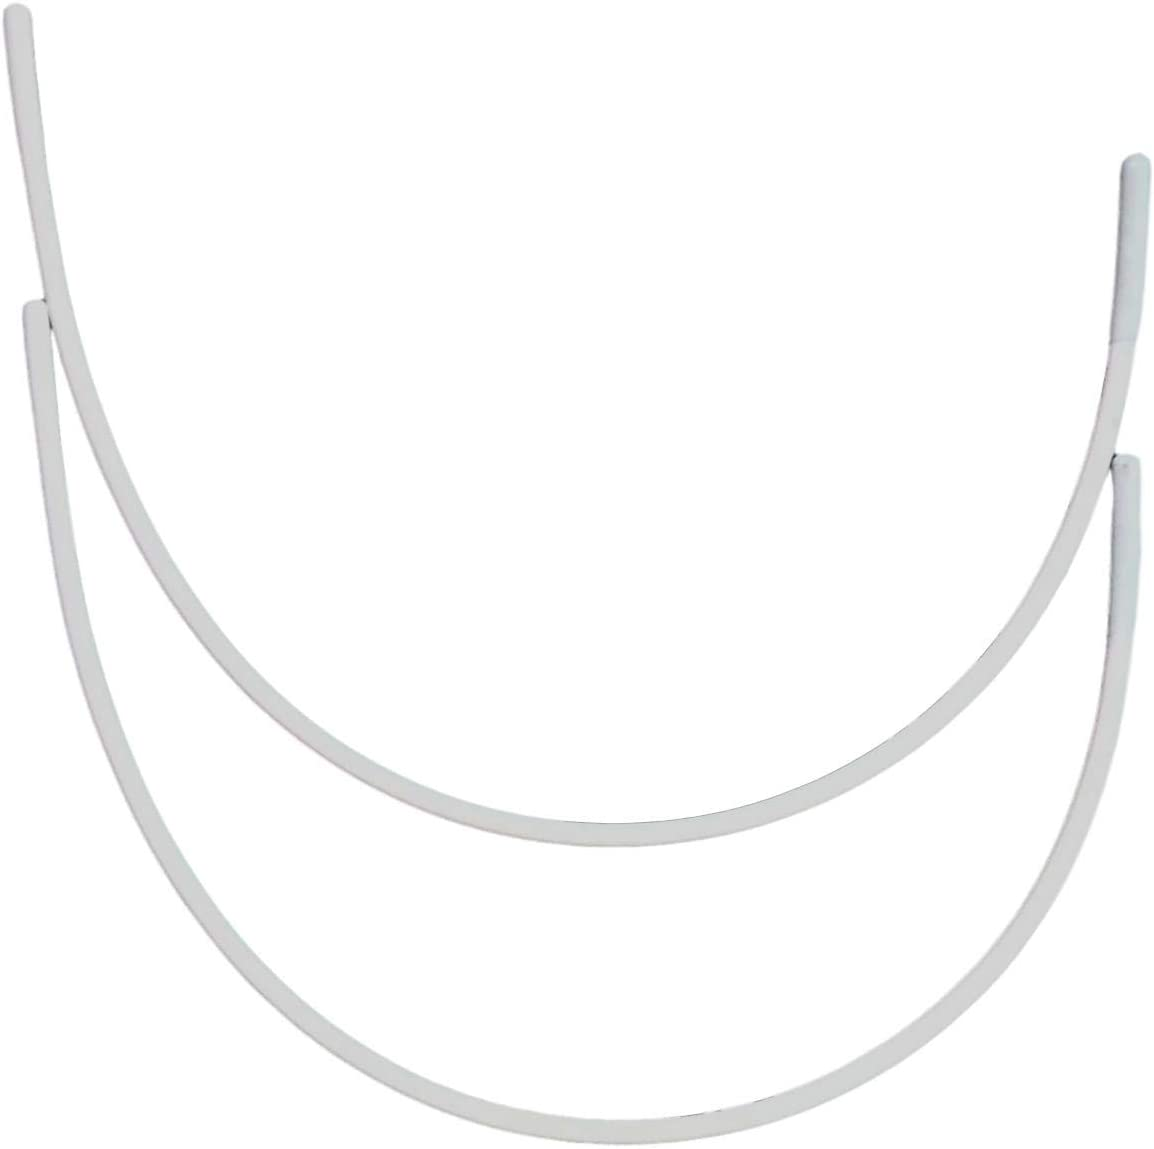 Porcelynne Carbon Steel Replacement Underwire Repair - Nylon Coated - Heavy Gauge Sturdy Wire for Bras - Vertical Wire Size 42-1 Pair - See Pictures for Measurements and How to Order